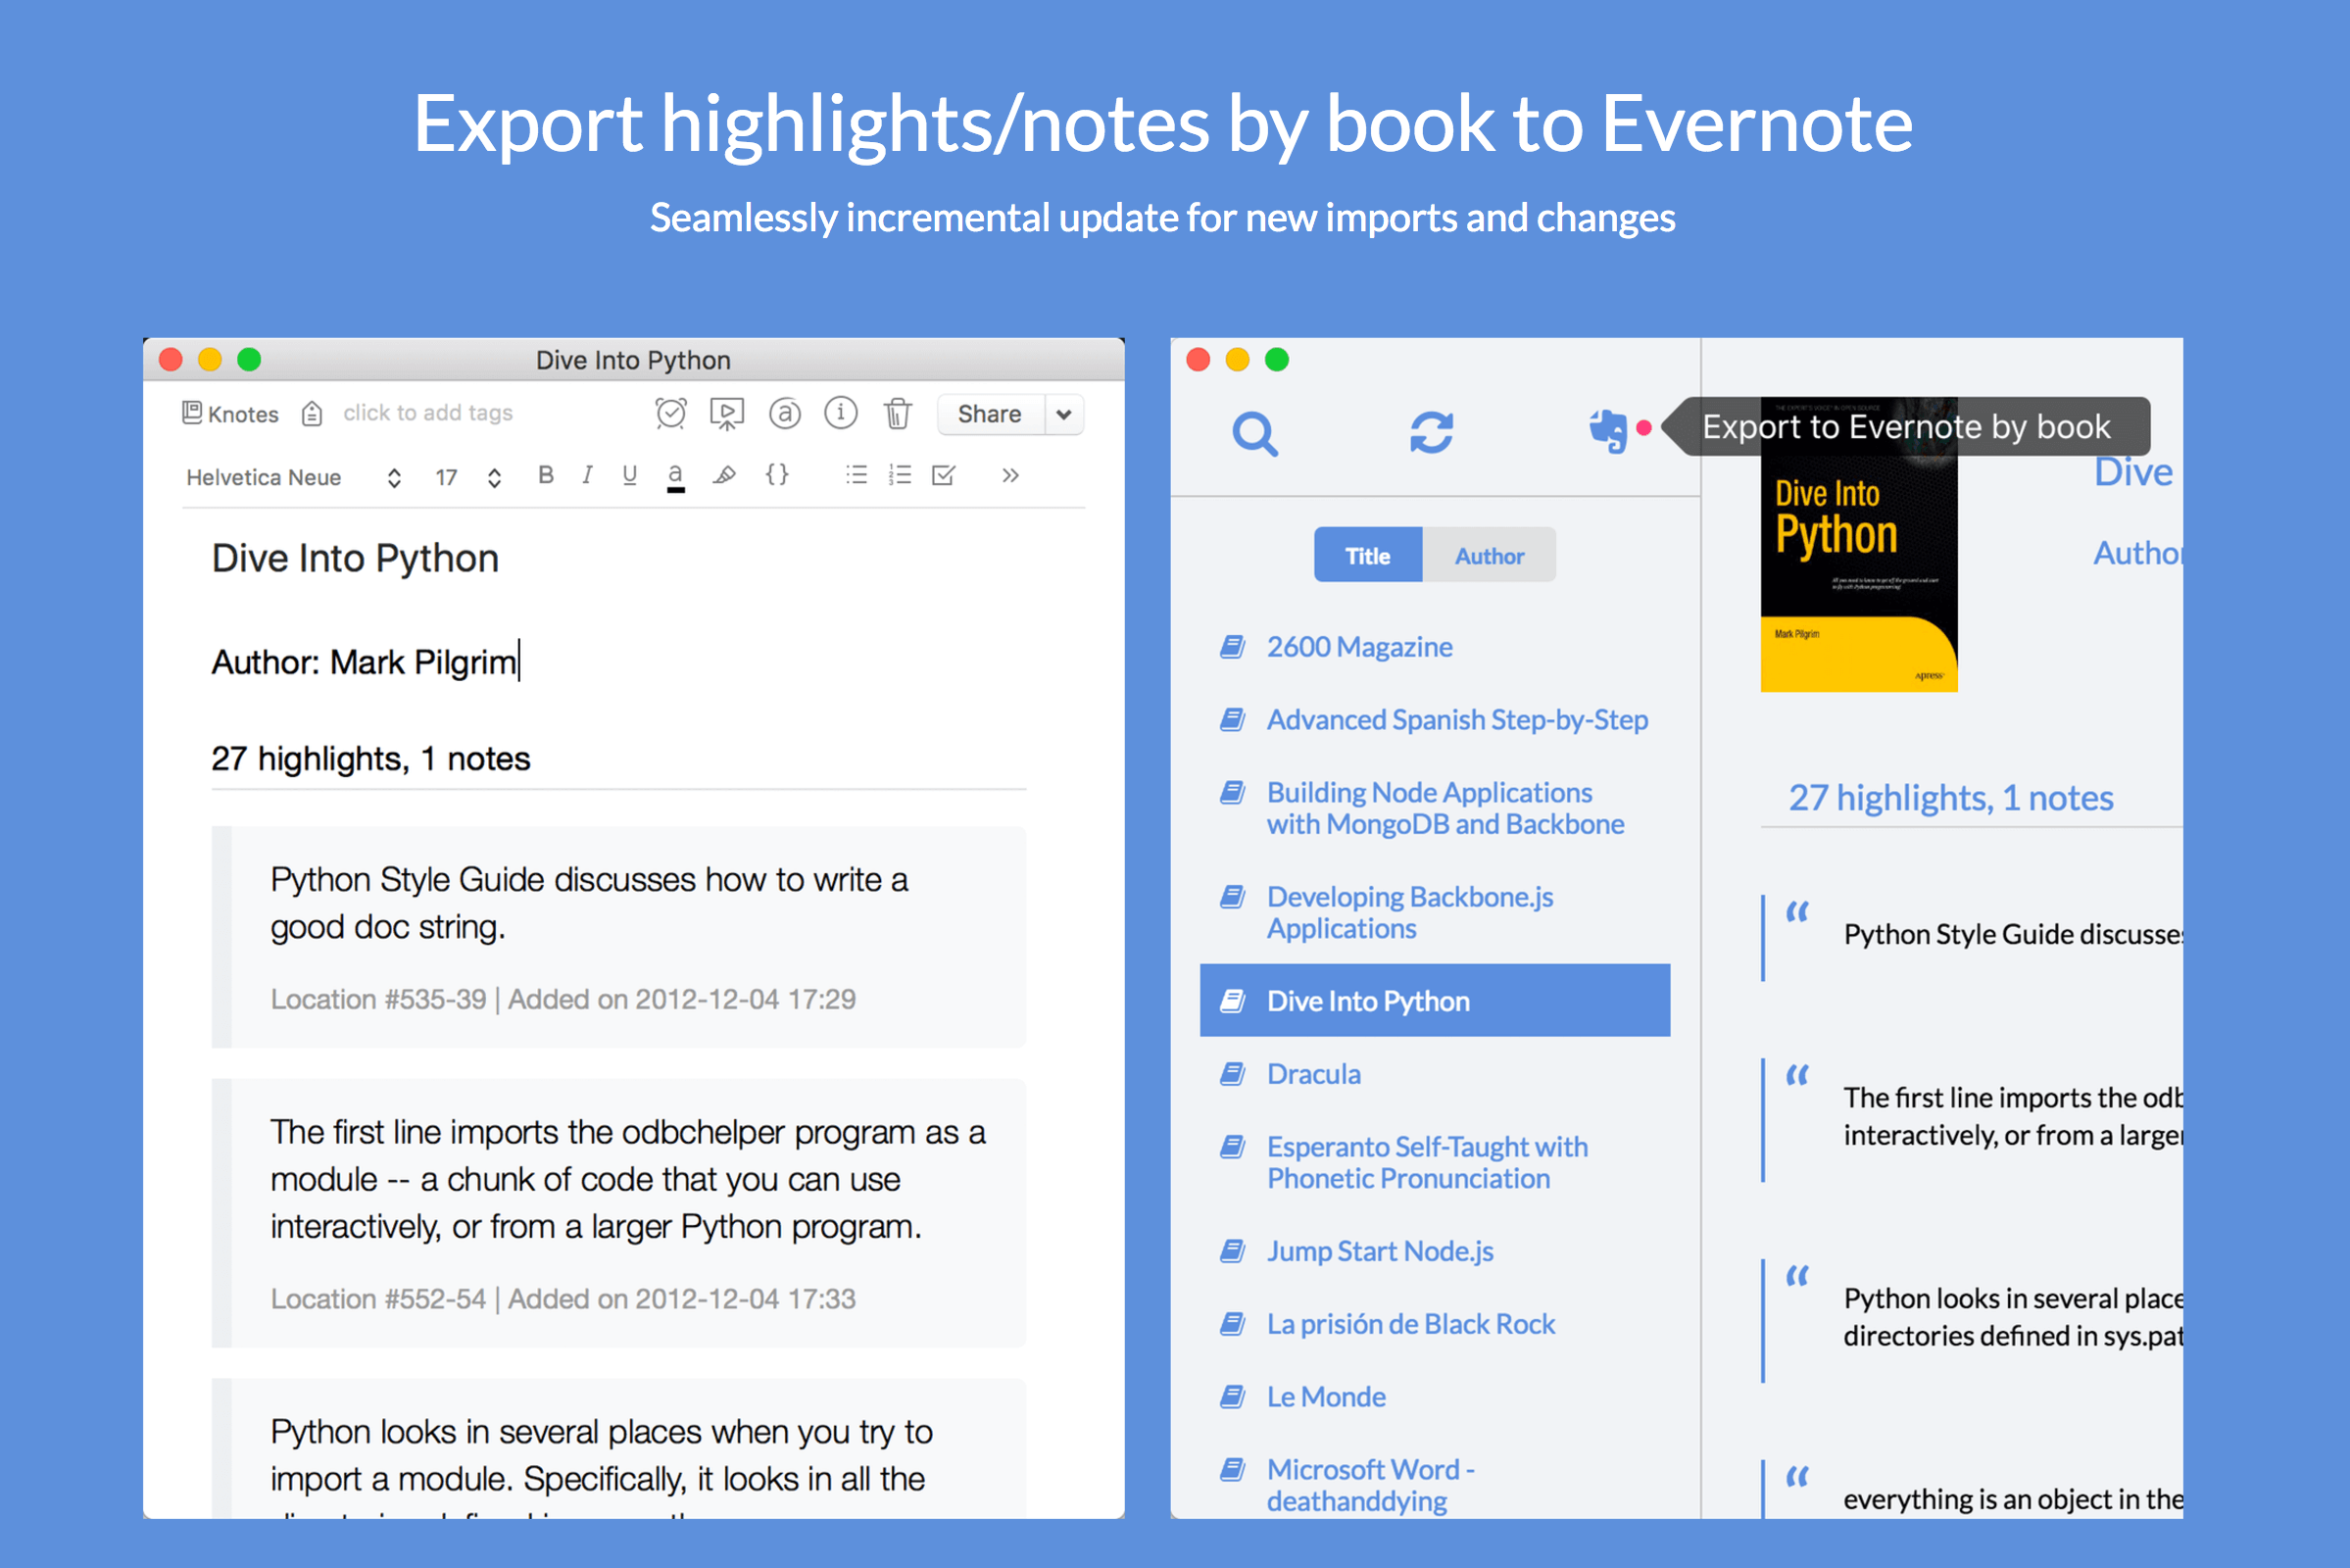 Export to Evernote